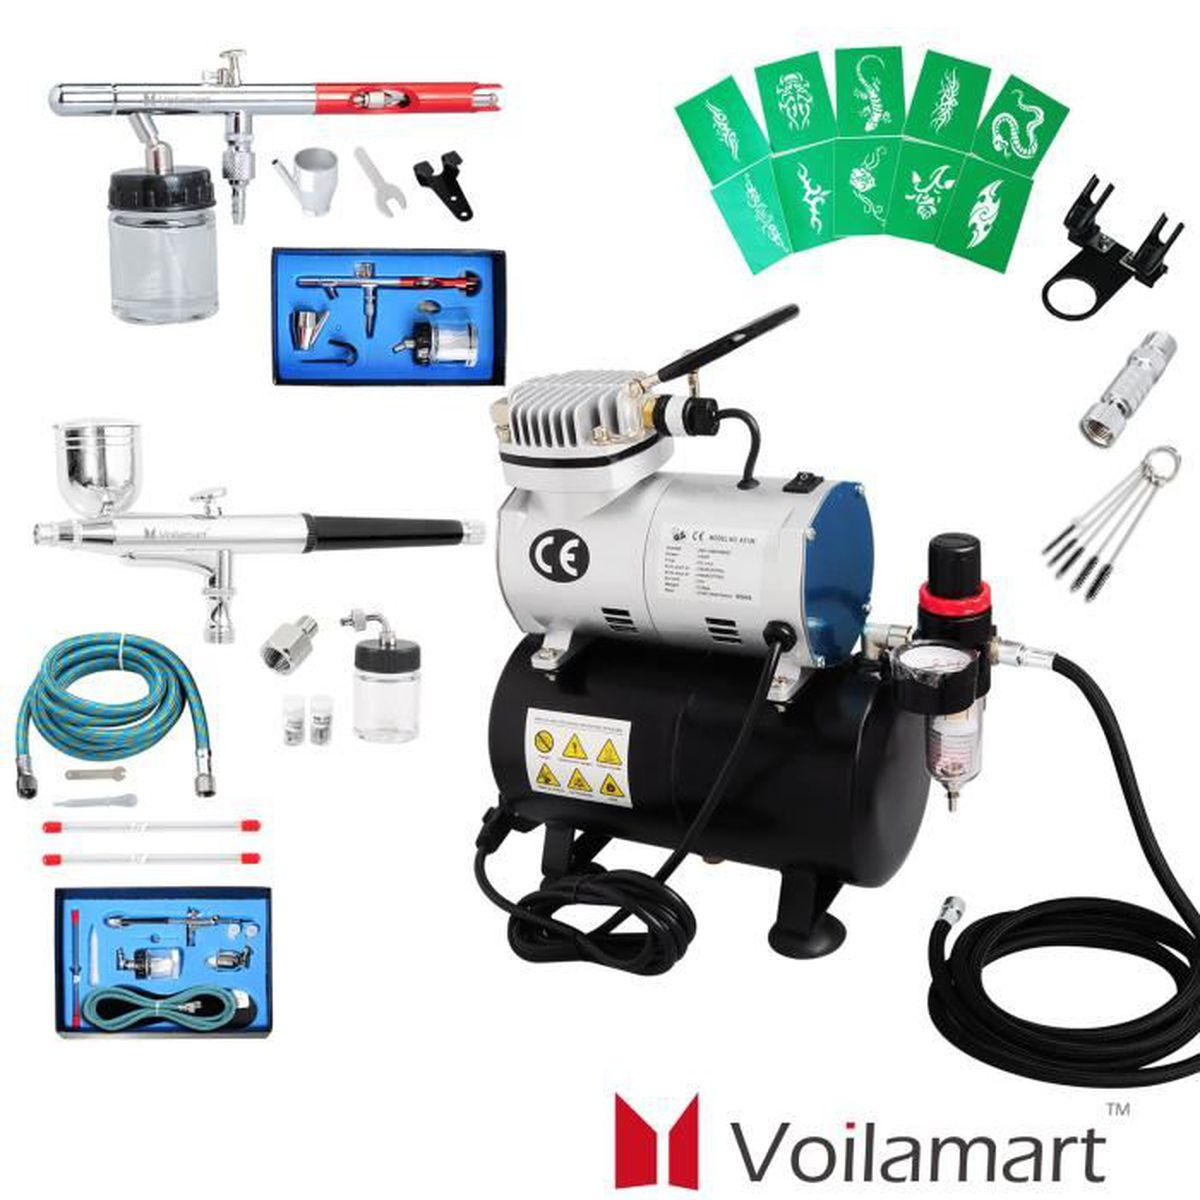 voilamart kit a rographe compresseur airbrush 4bar 2 pistolets 22cc make up spray peinture. Black Bedroom Furniture Sets. Home Design Ideas